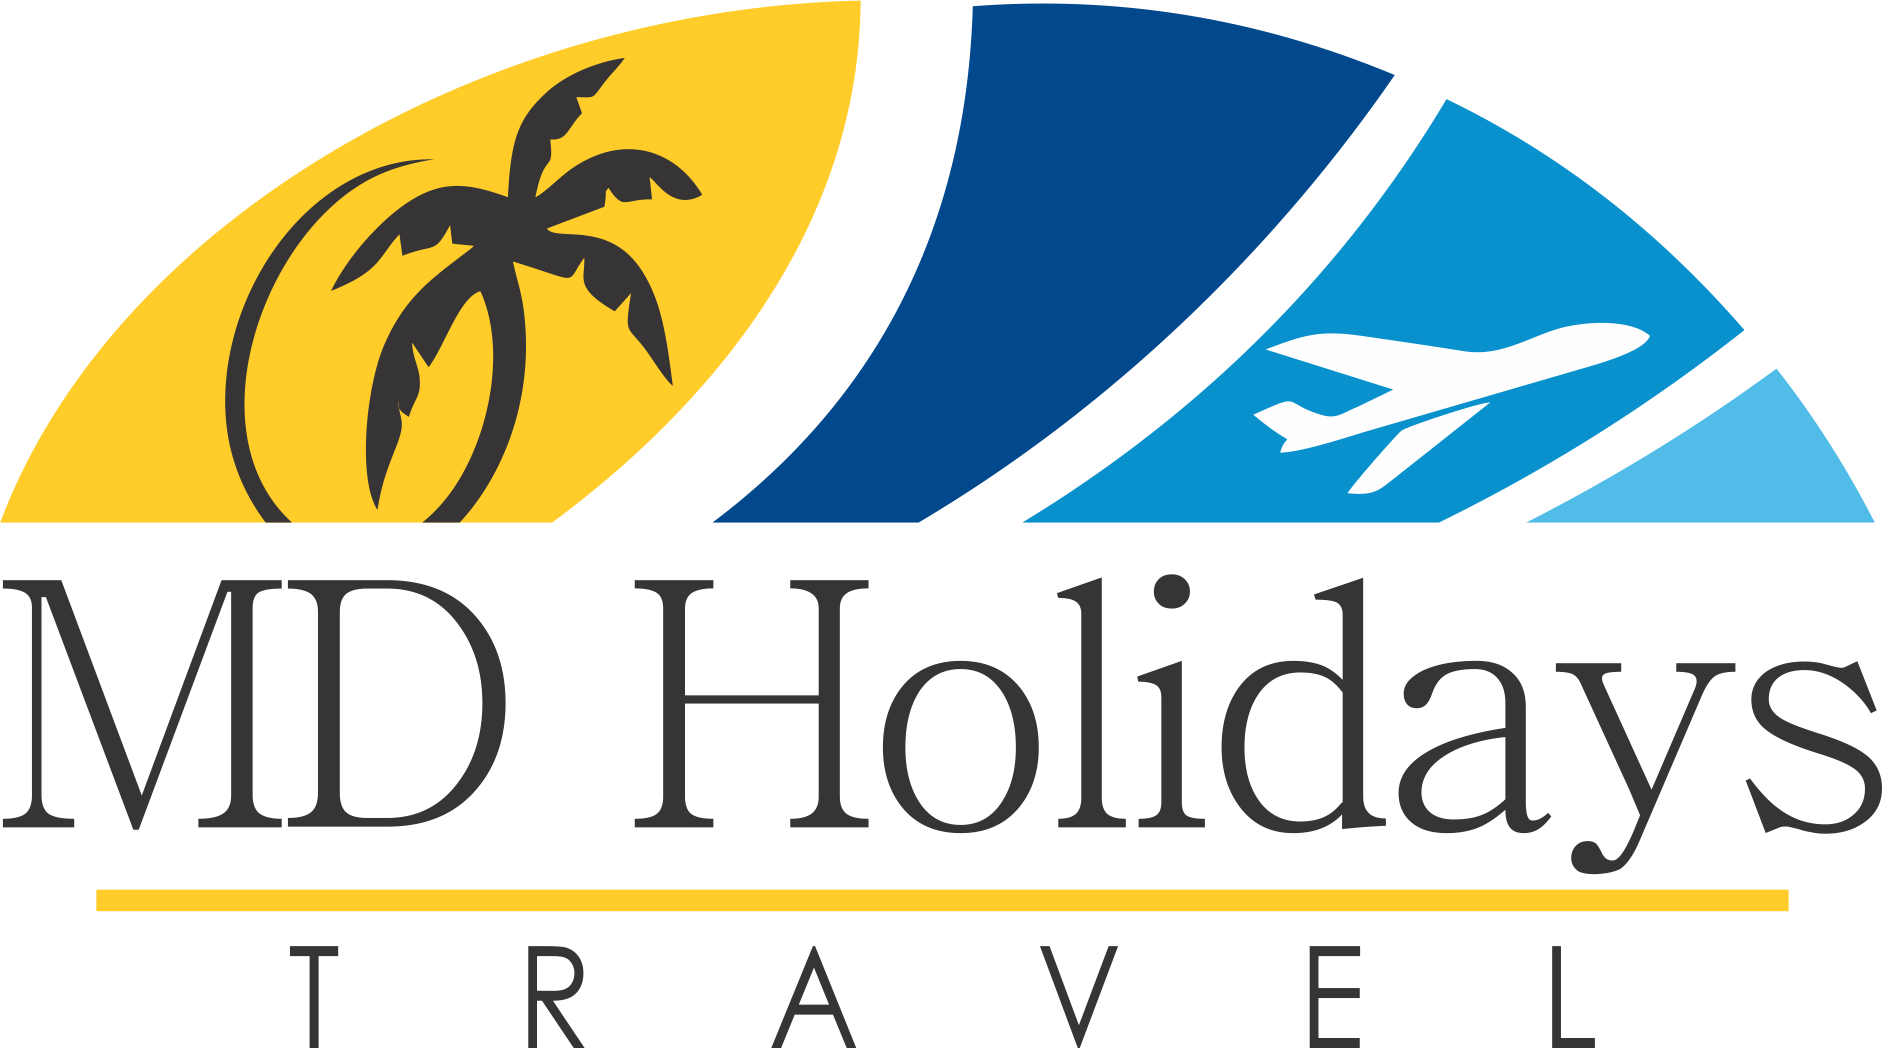 MD HOLIDAYS TRAVEL | Jupiter - MD HOLIDAYS TRAVEL